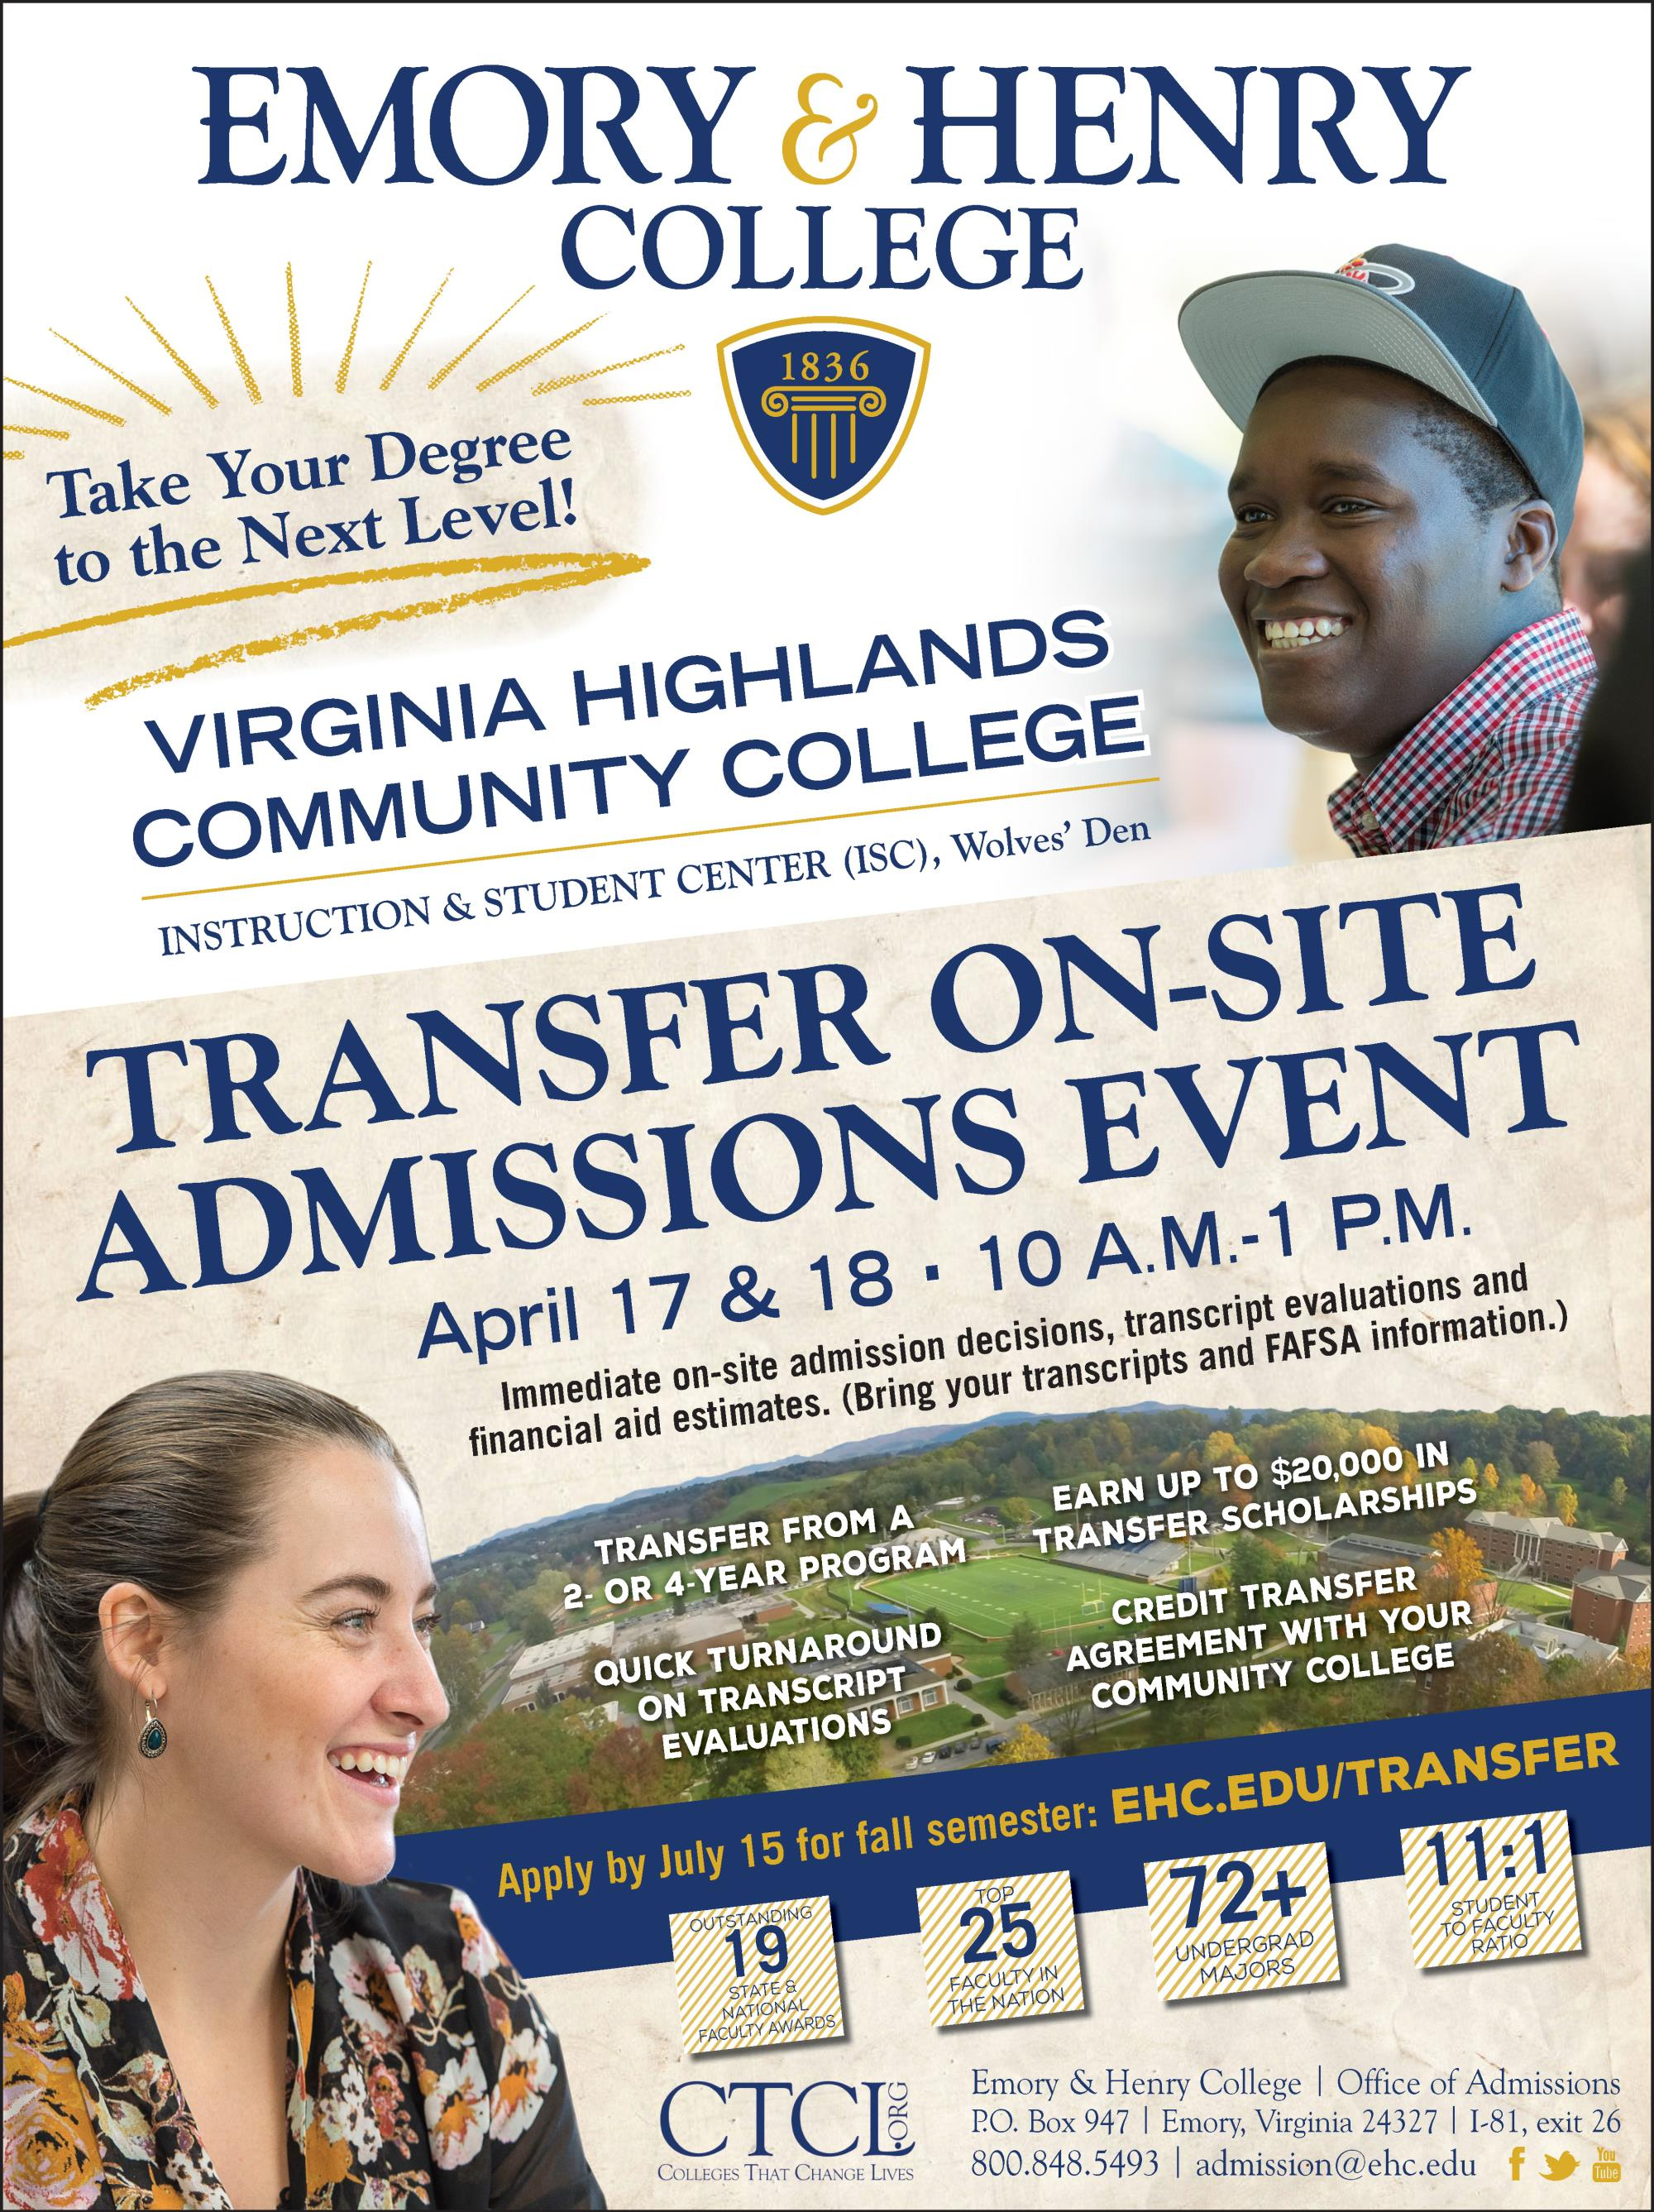 Emory and Henry College Transfer On-Site Admission Event